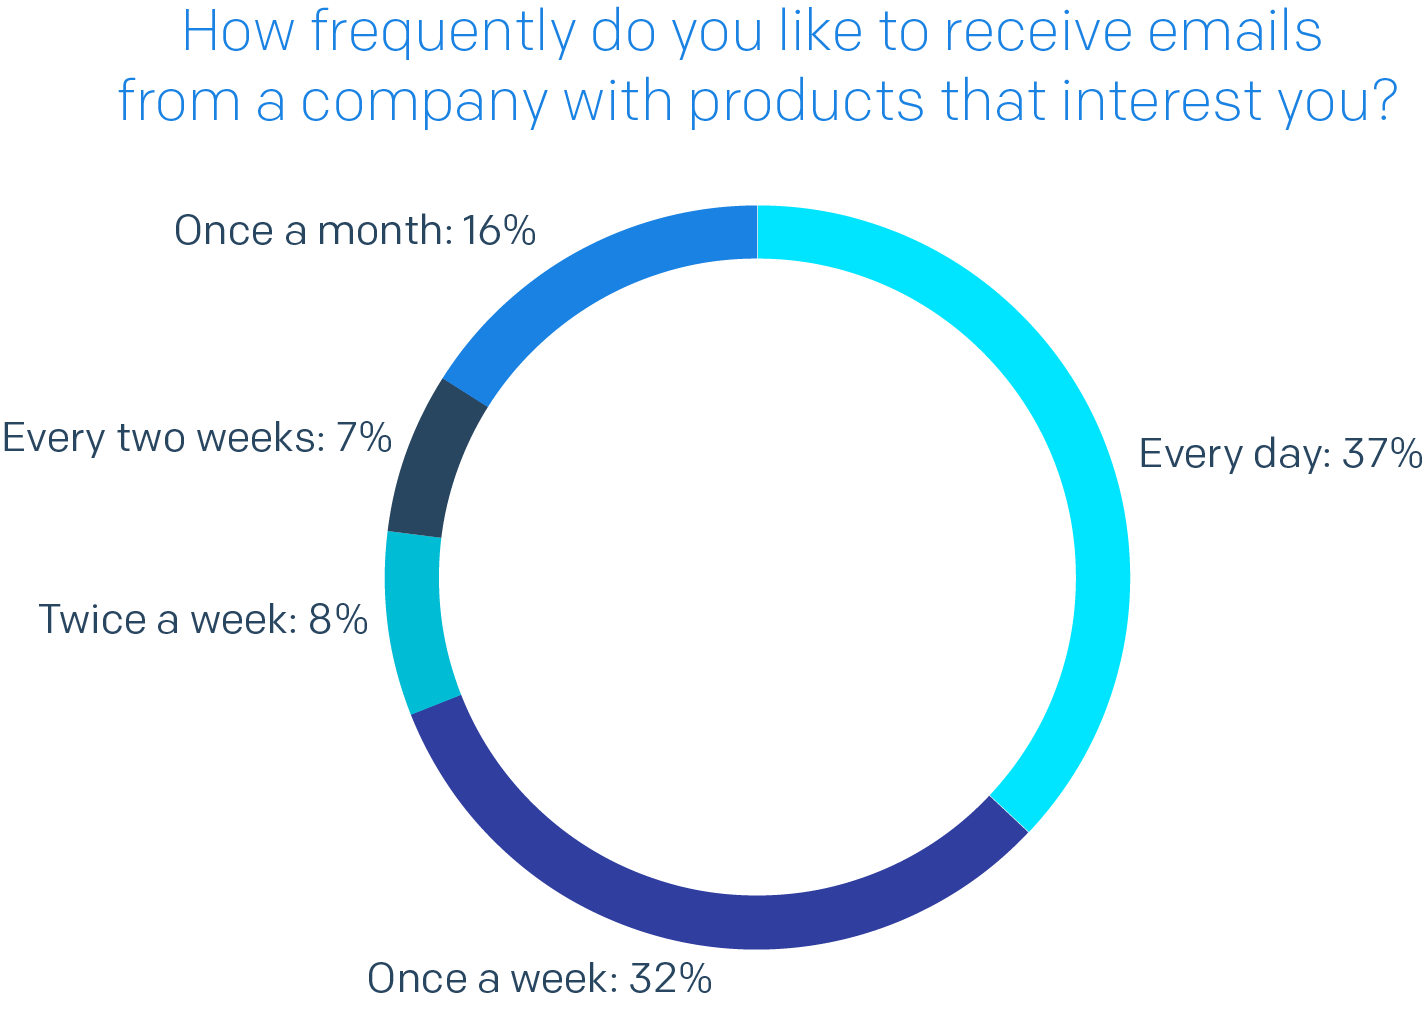 Pie chart of How Frequently Do You Like to Receive Emails From a Company with Products That Interest You?